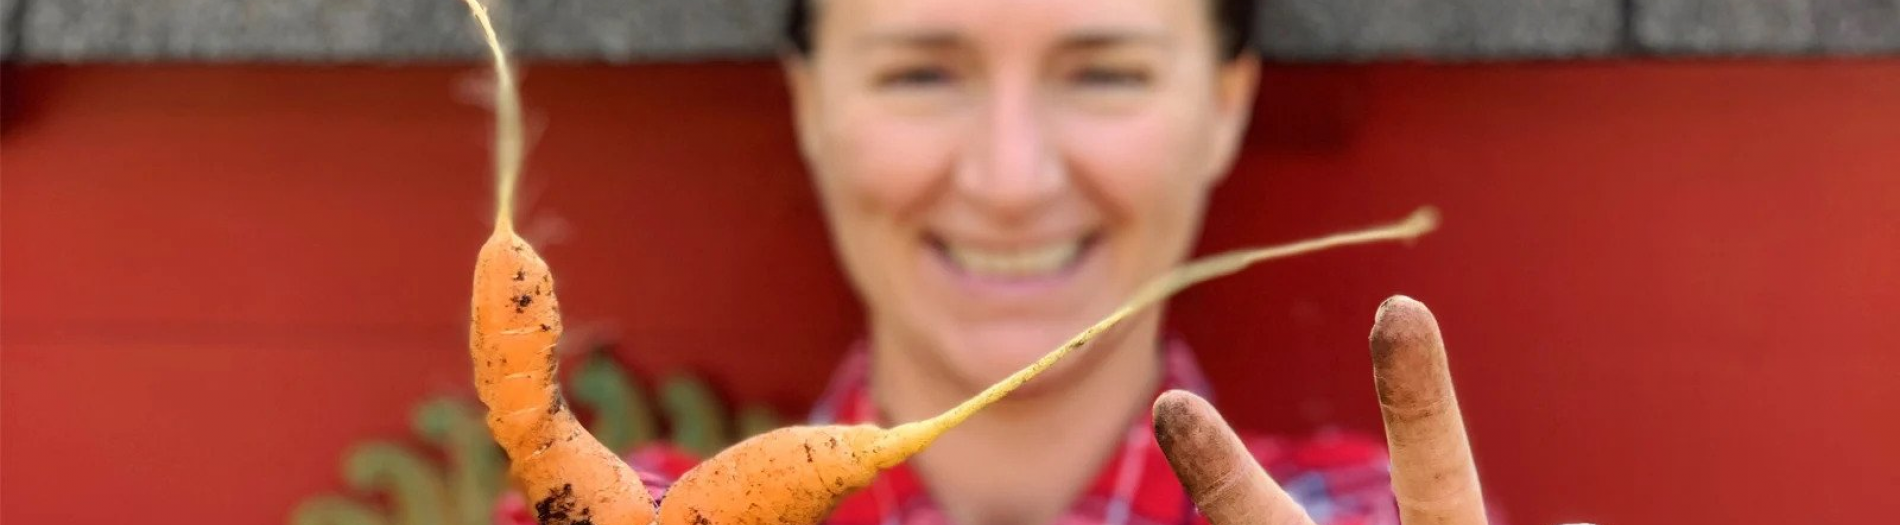 From Waste to Value: How to Tackle Food Waste